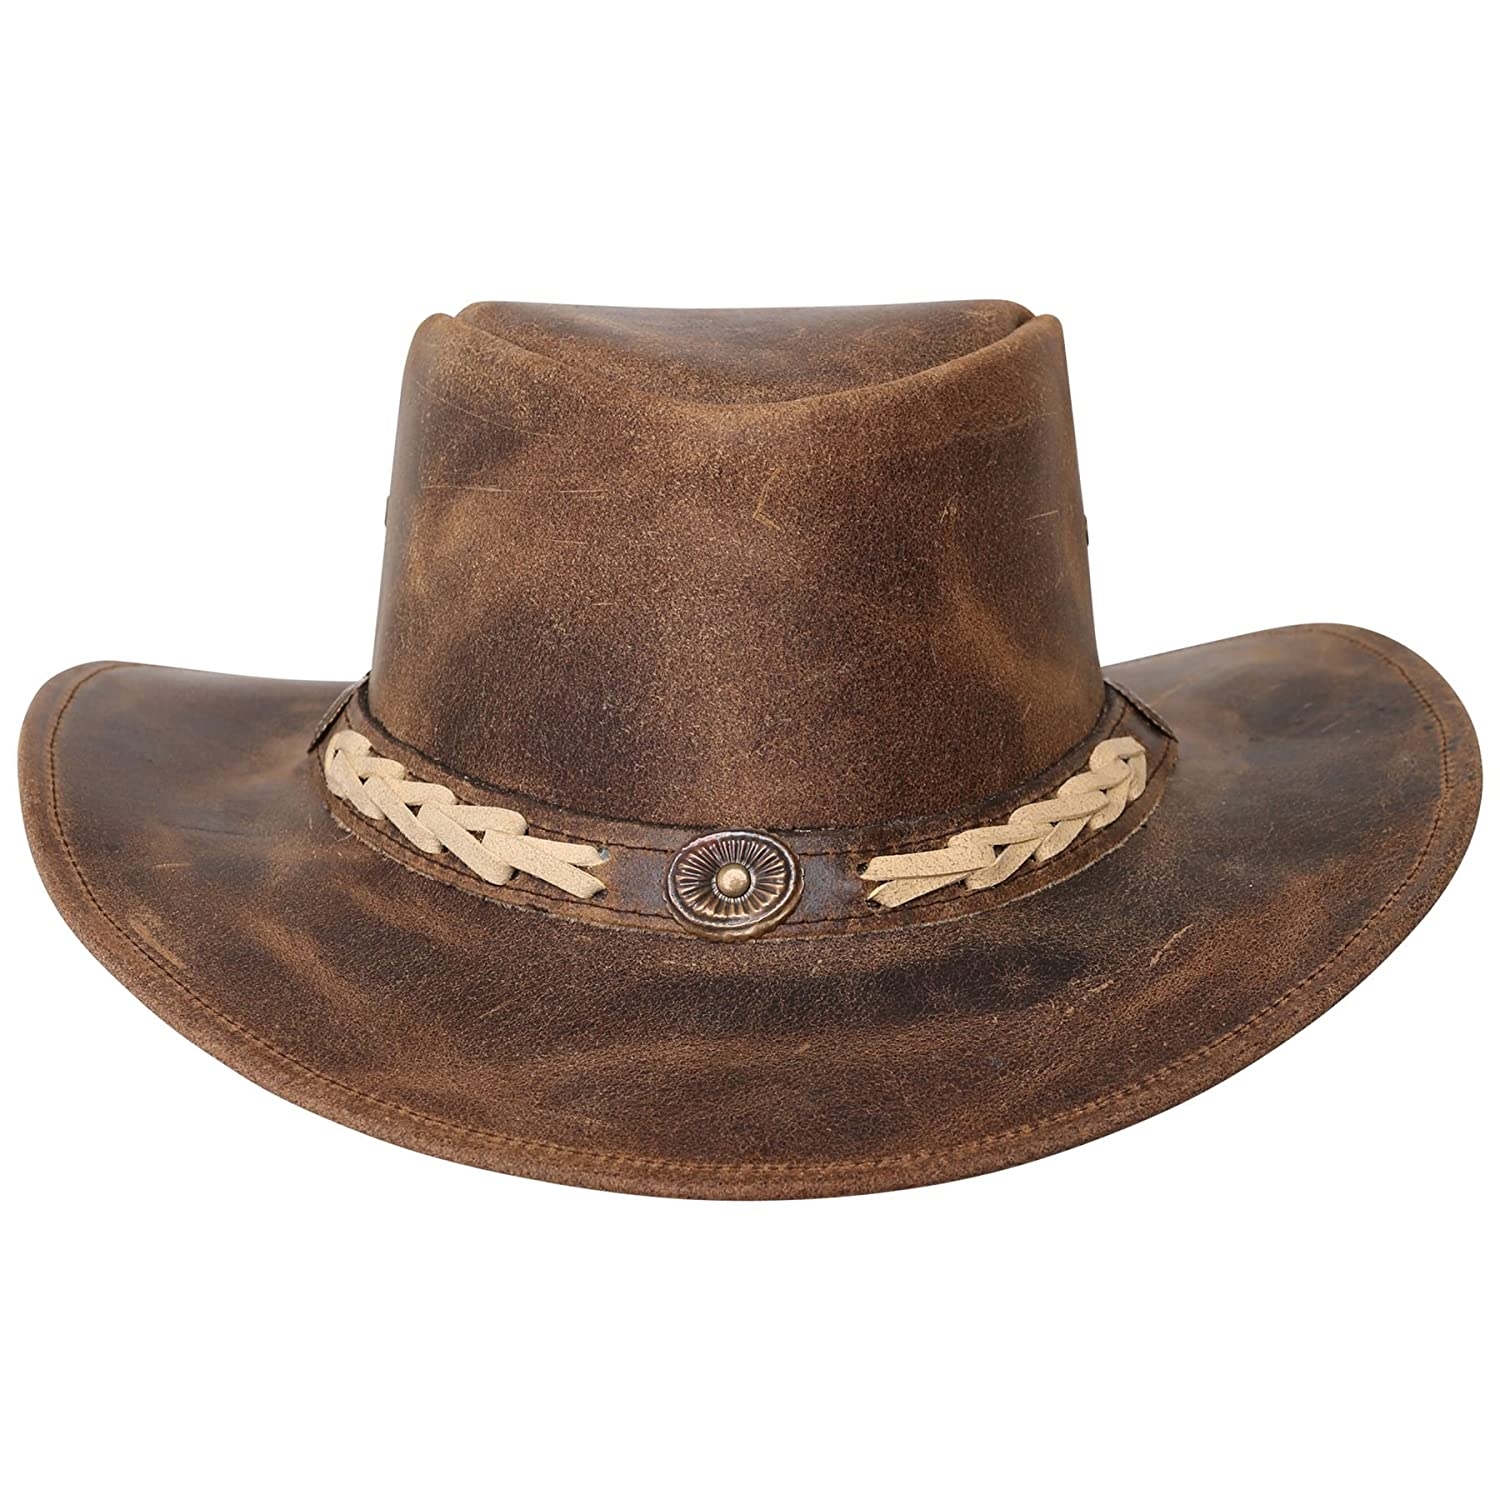 New Oily Finish Marron Leather Western Cowboy Hats Calgary with Free Chin Strap Sialkot